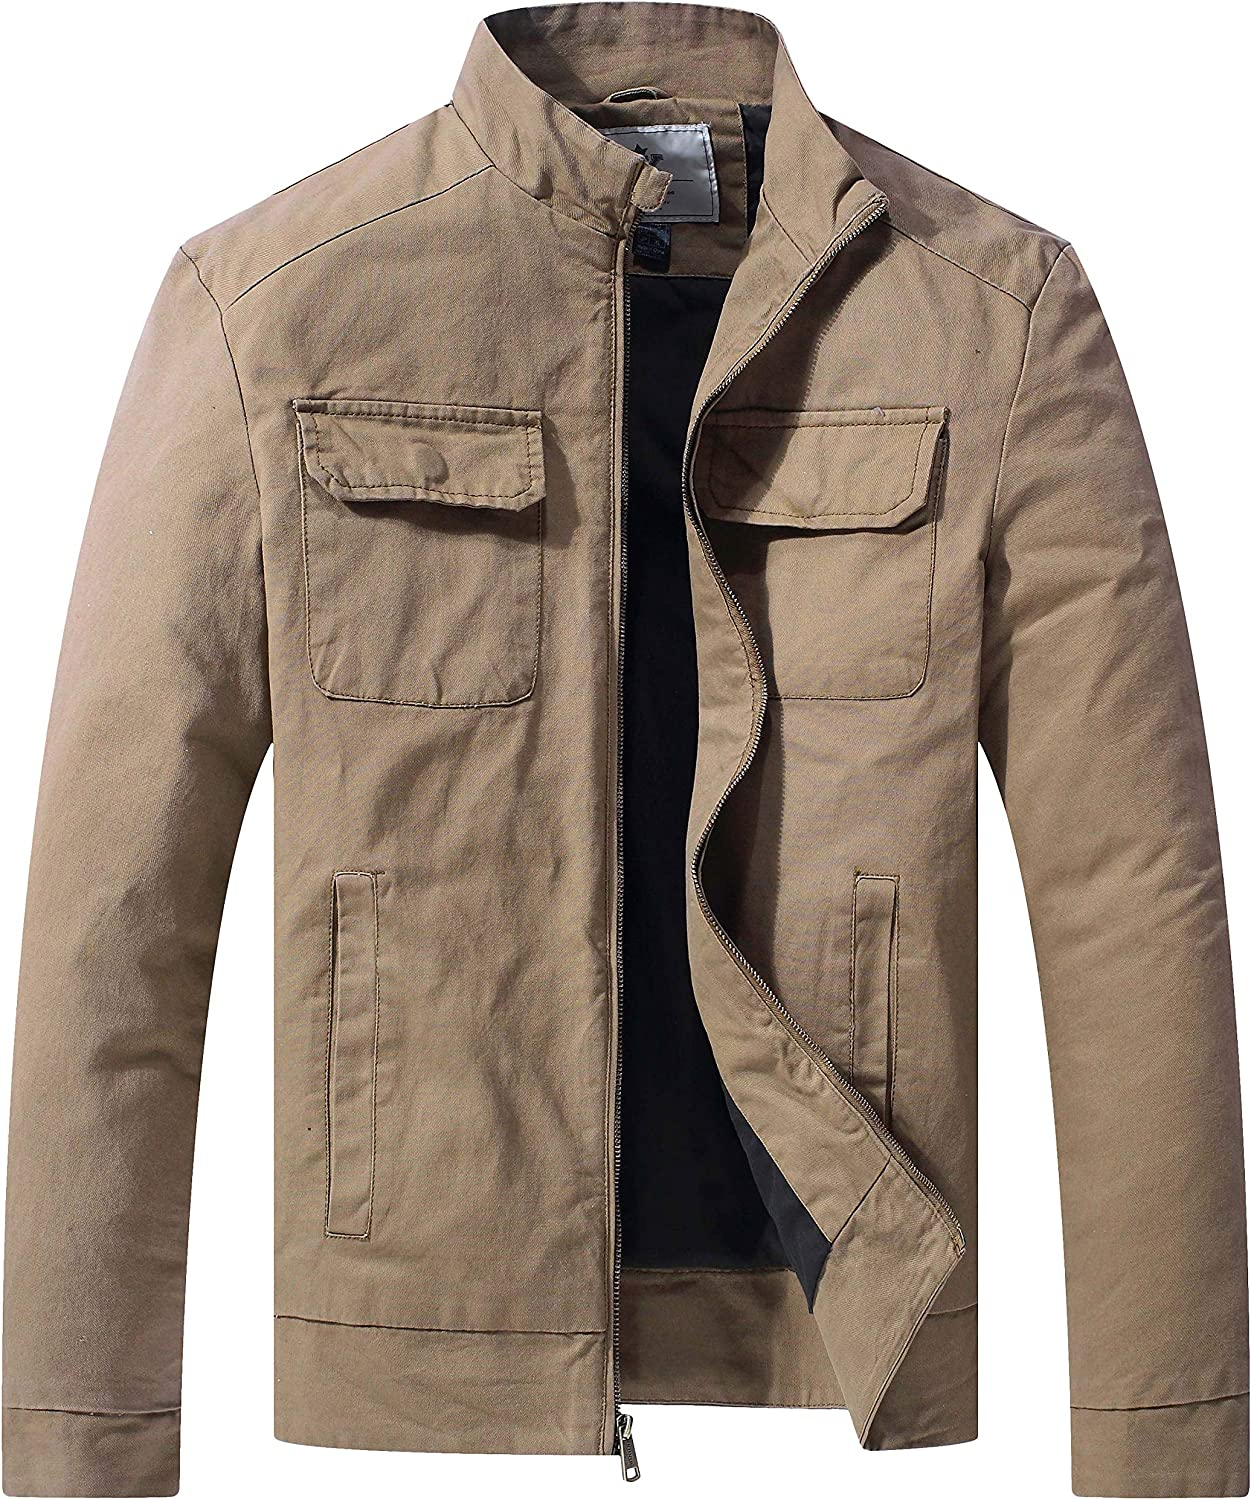 WenVen Mens Tactical Jacket Cotton Military Outwear